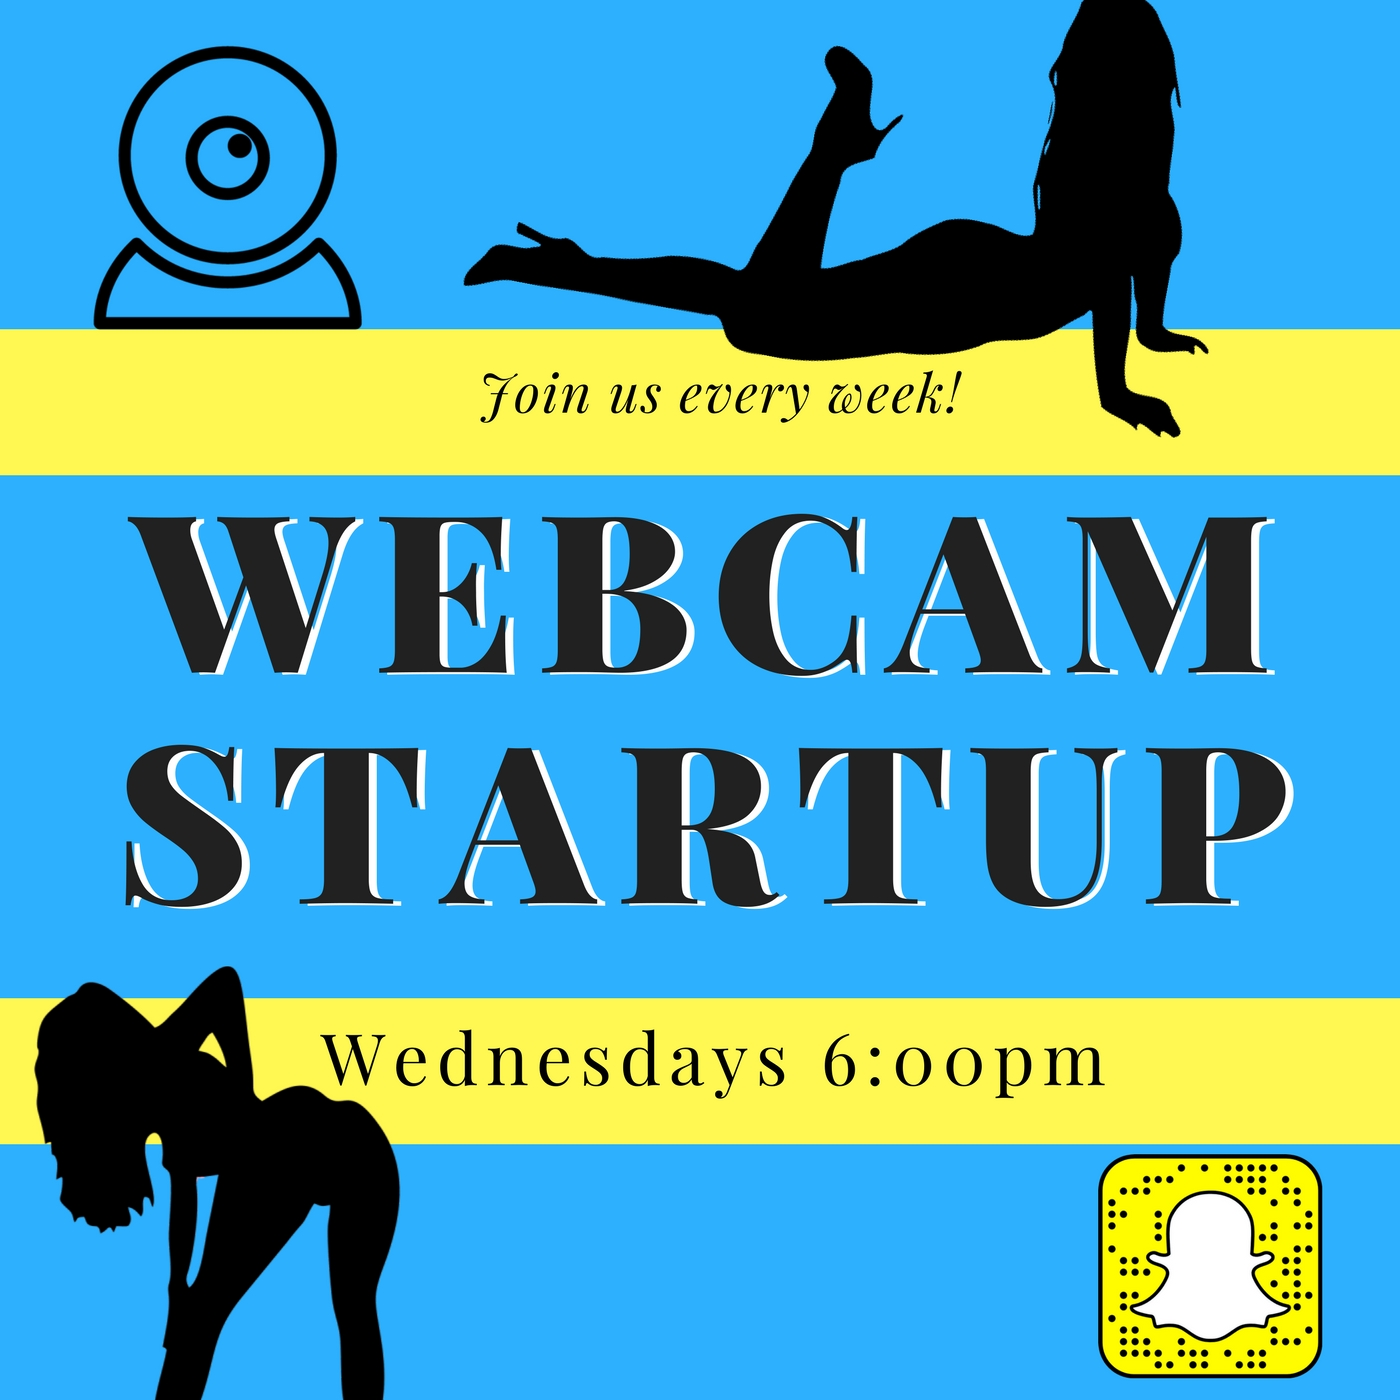 Webcam Startup: Camming / Adult Industry Podcast